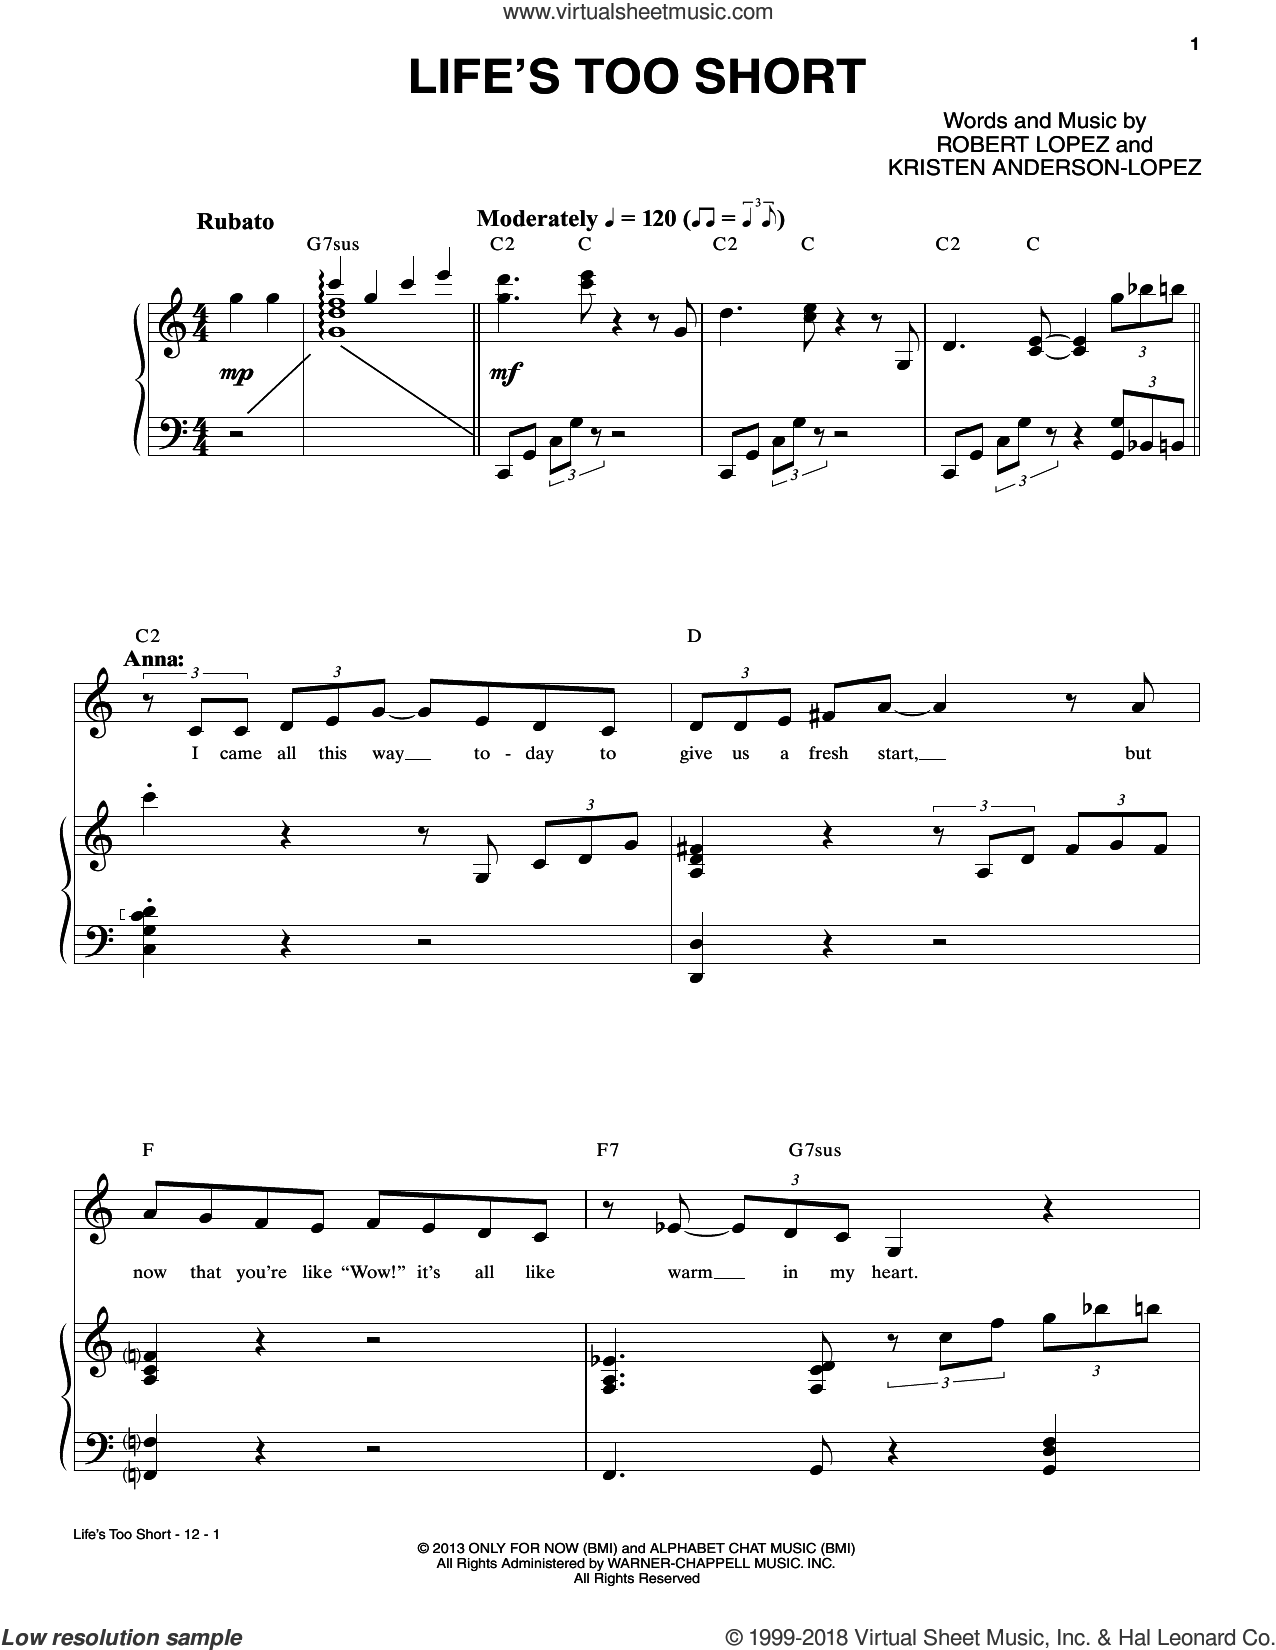 Life's Too Short sheet music for voice and piano by Robert & Kristen Anderson-Lopez, Kristen Anderson-Lopez and Robert Lopez, intermediate skill level